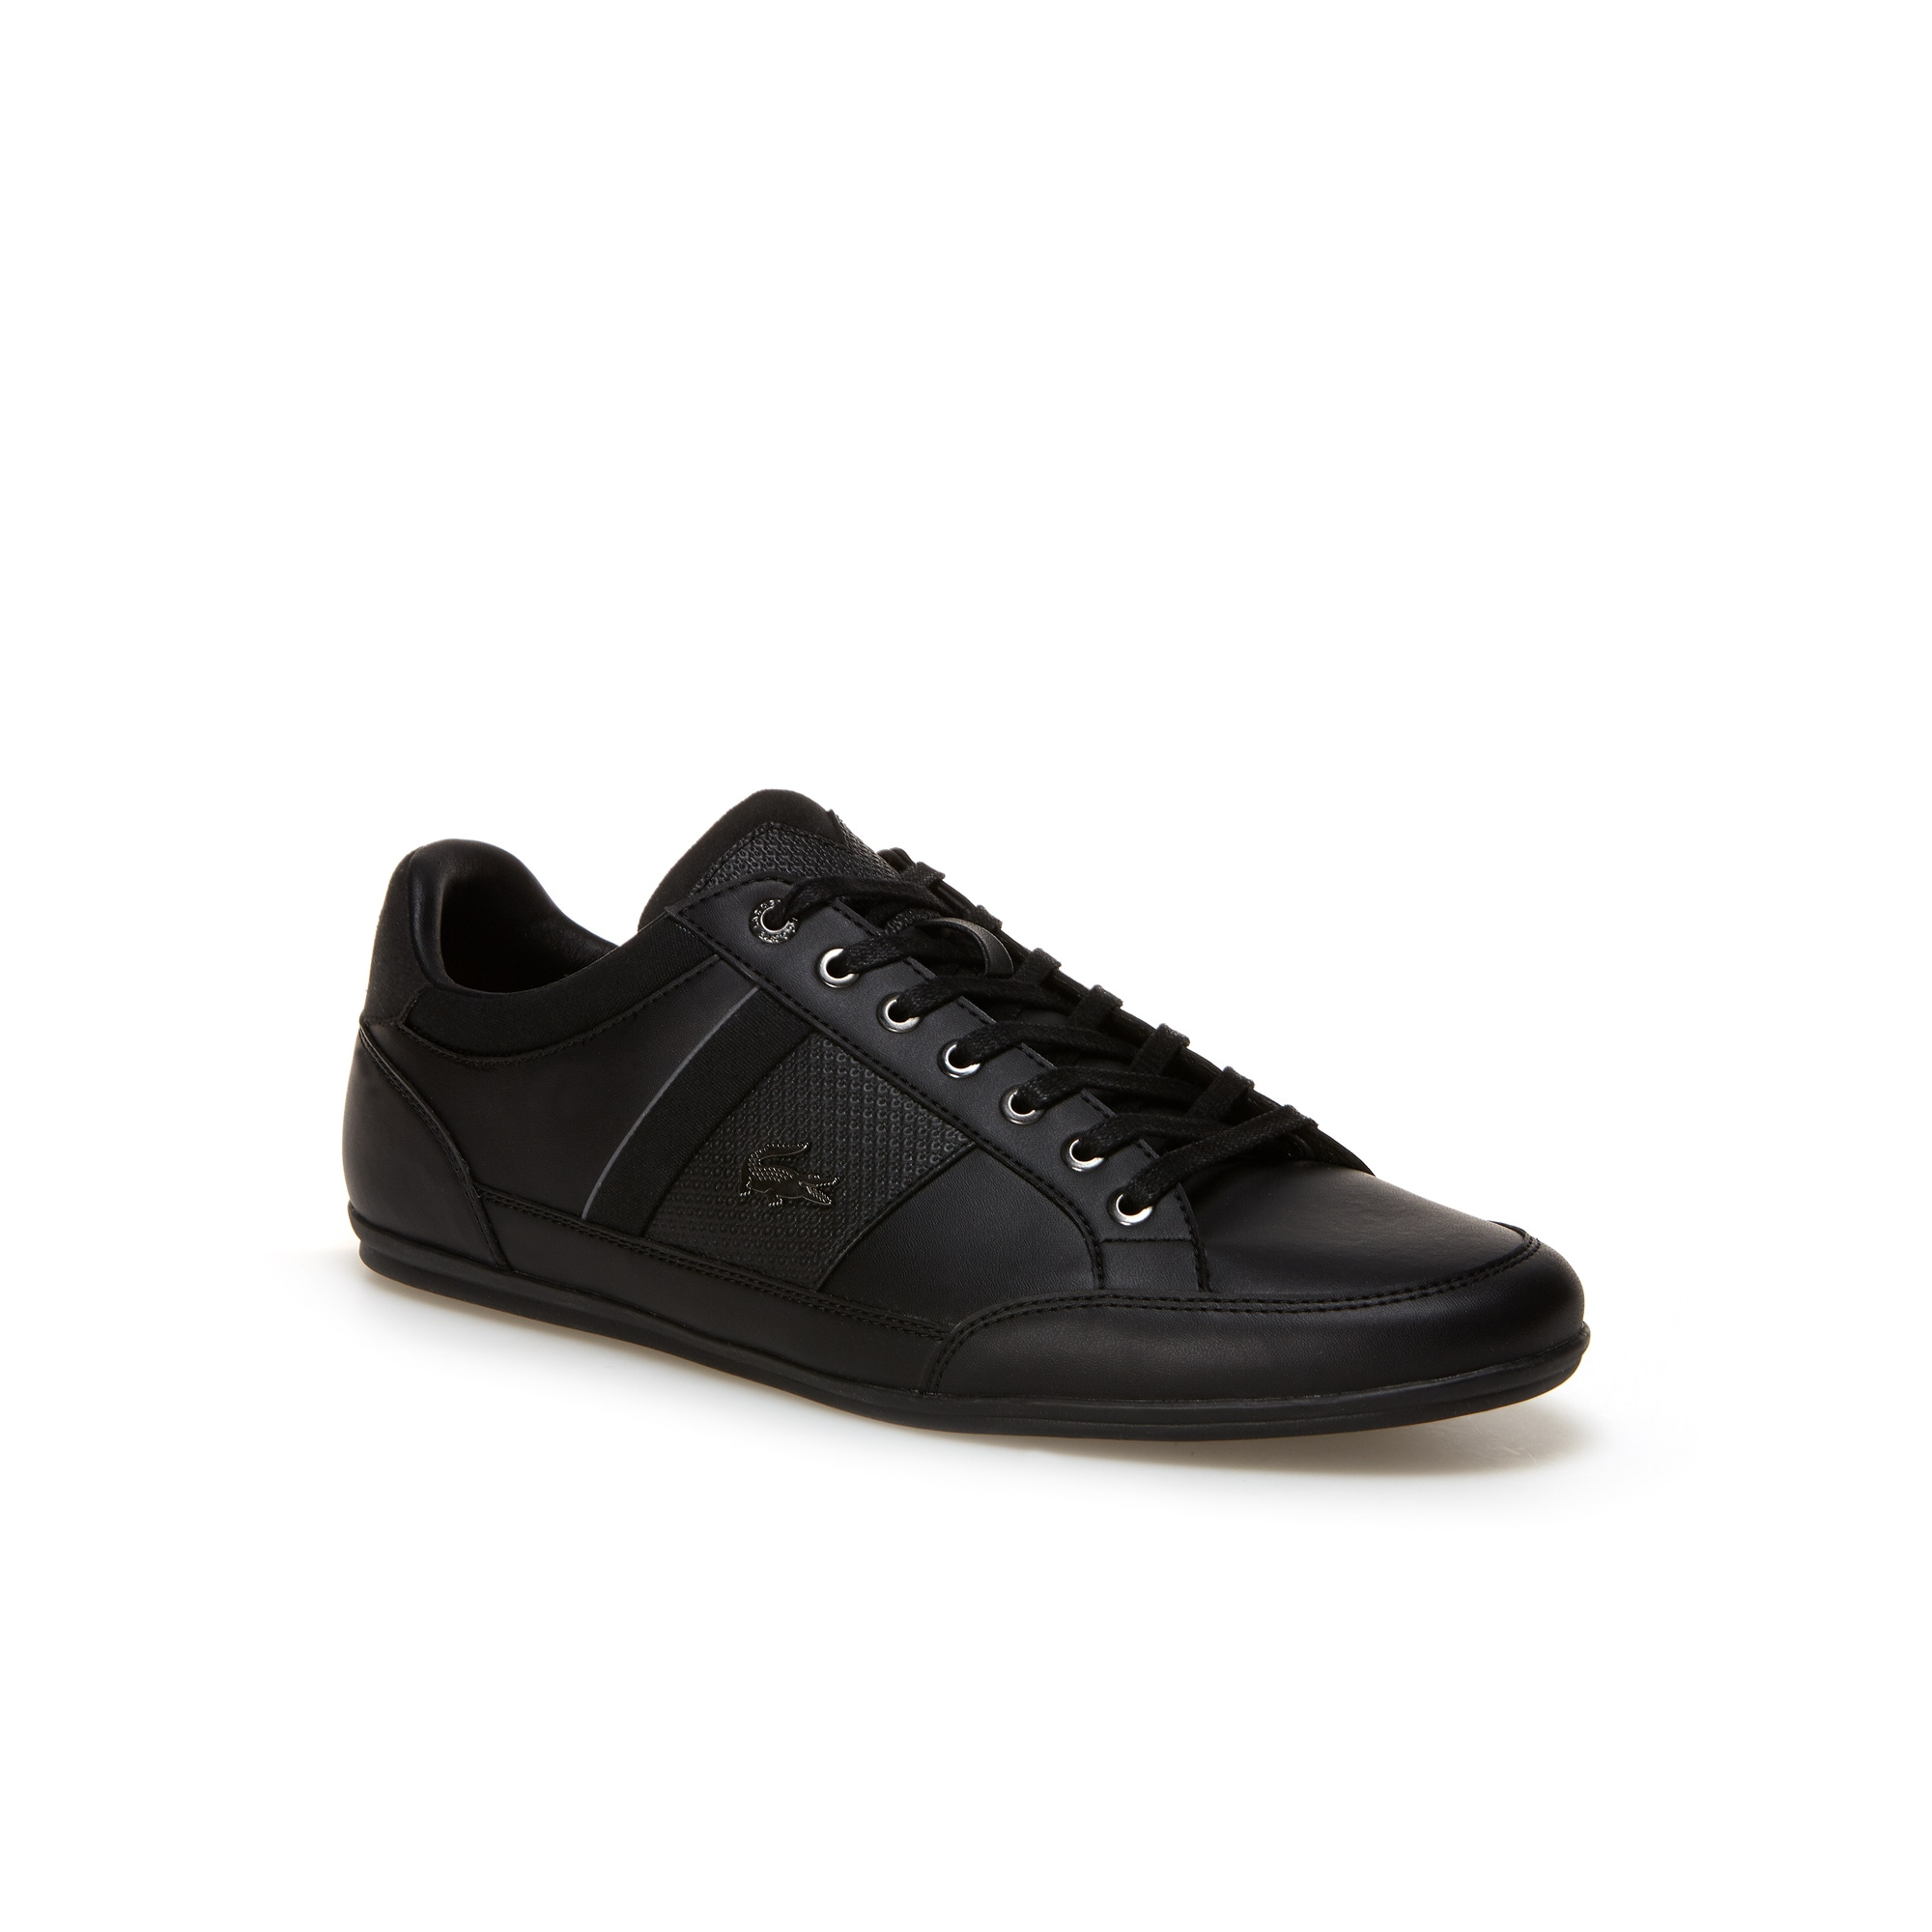 Men's Chaymon Canvas, Nappa and Suede Leather Trainers